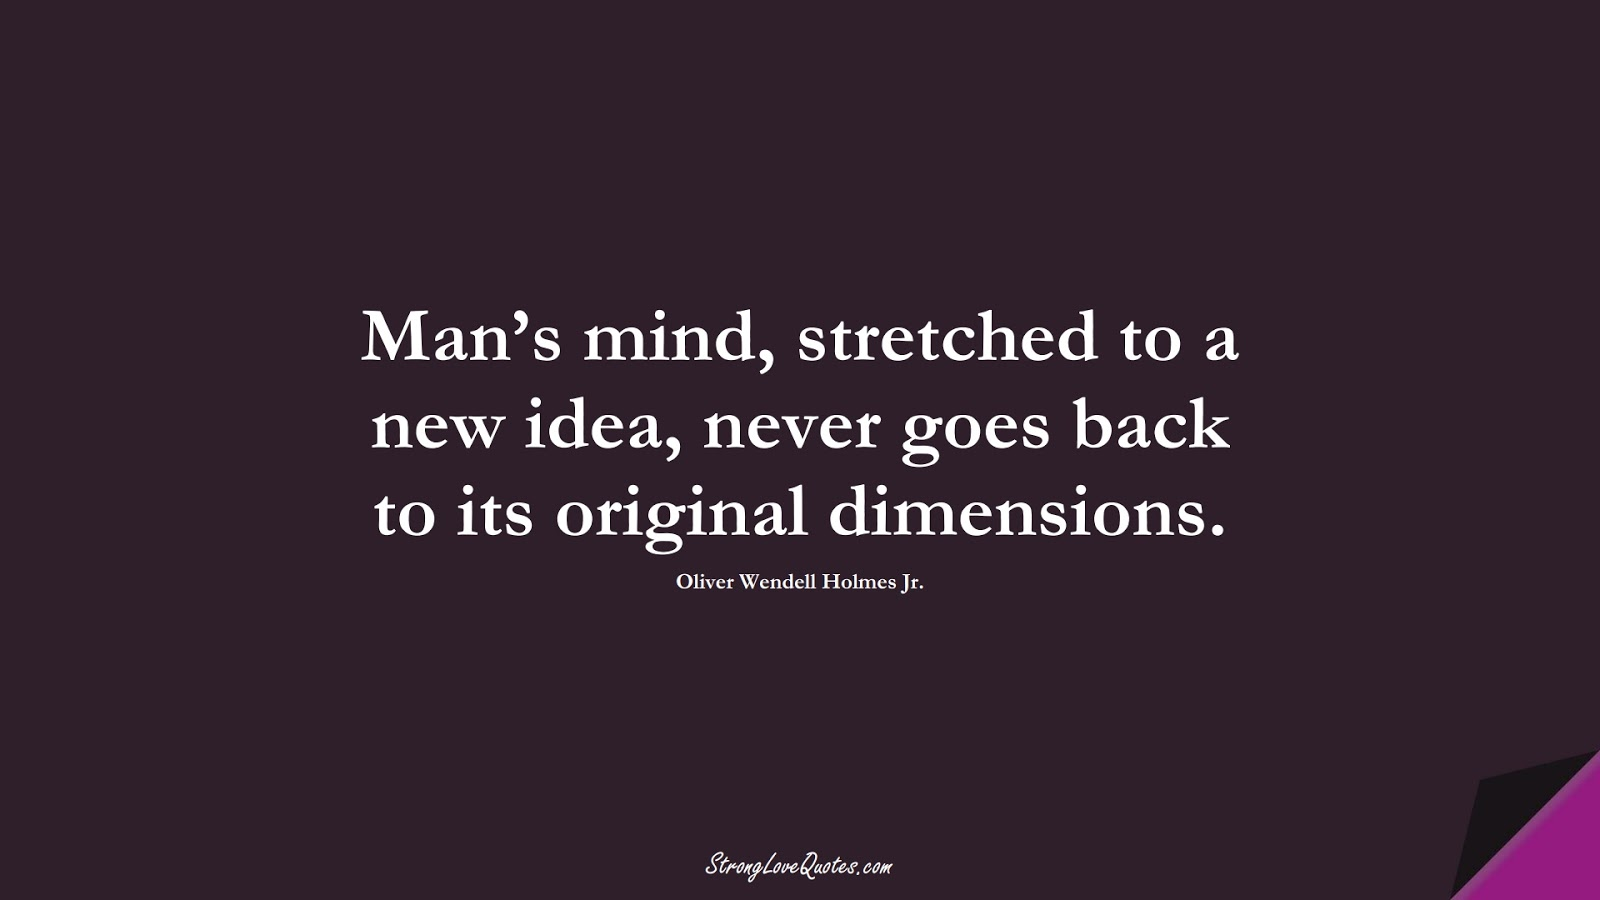 Man's mind, stretched to a new idea, never goes back to its original dimensions. (Oliver Wendell Holmes Jr.);  #LearningQuotes